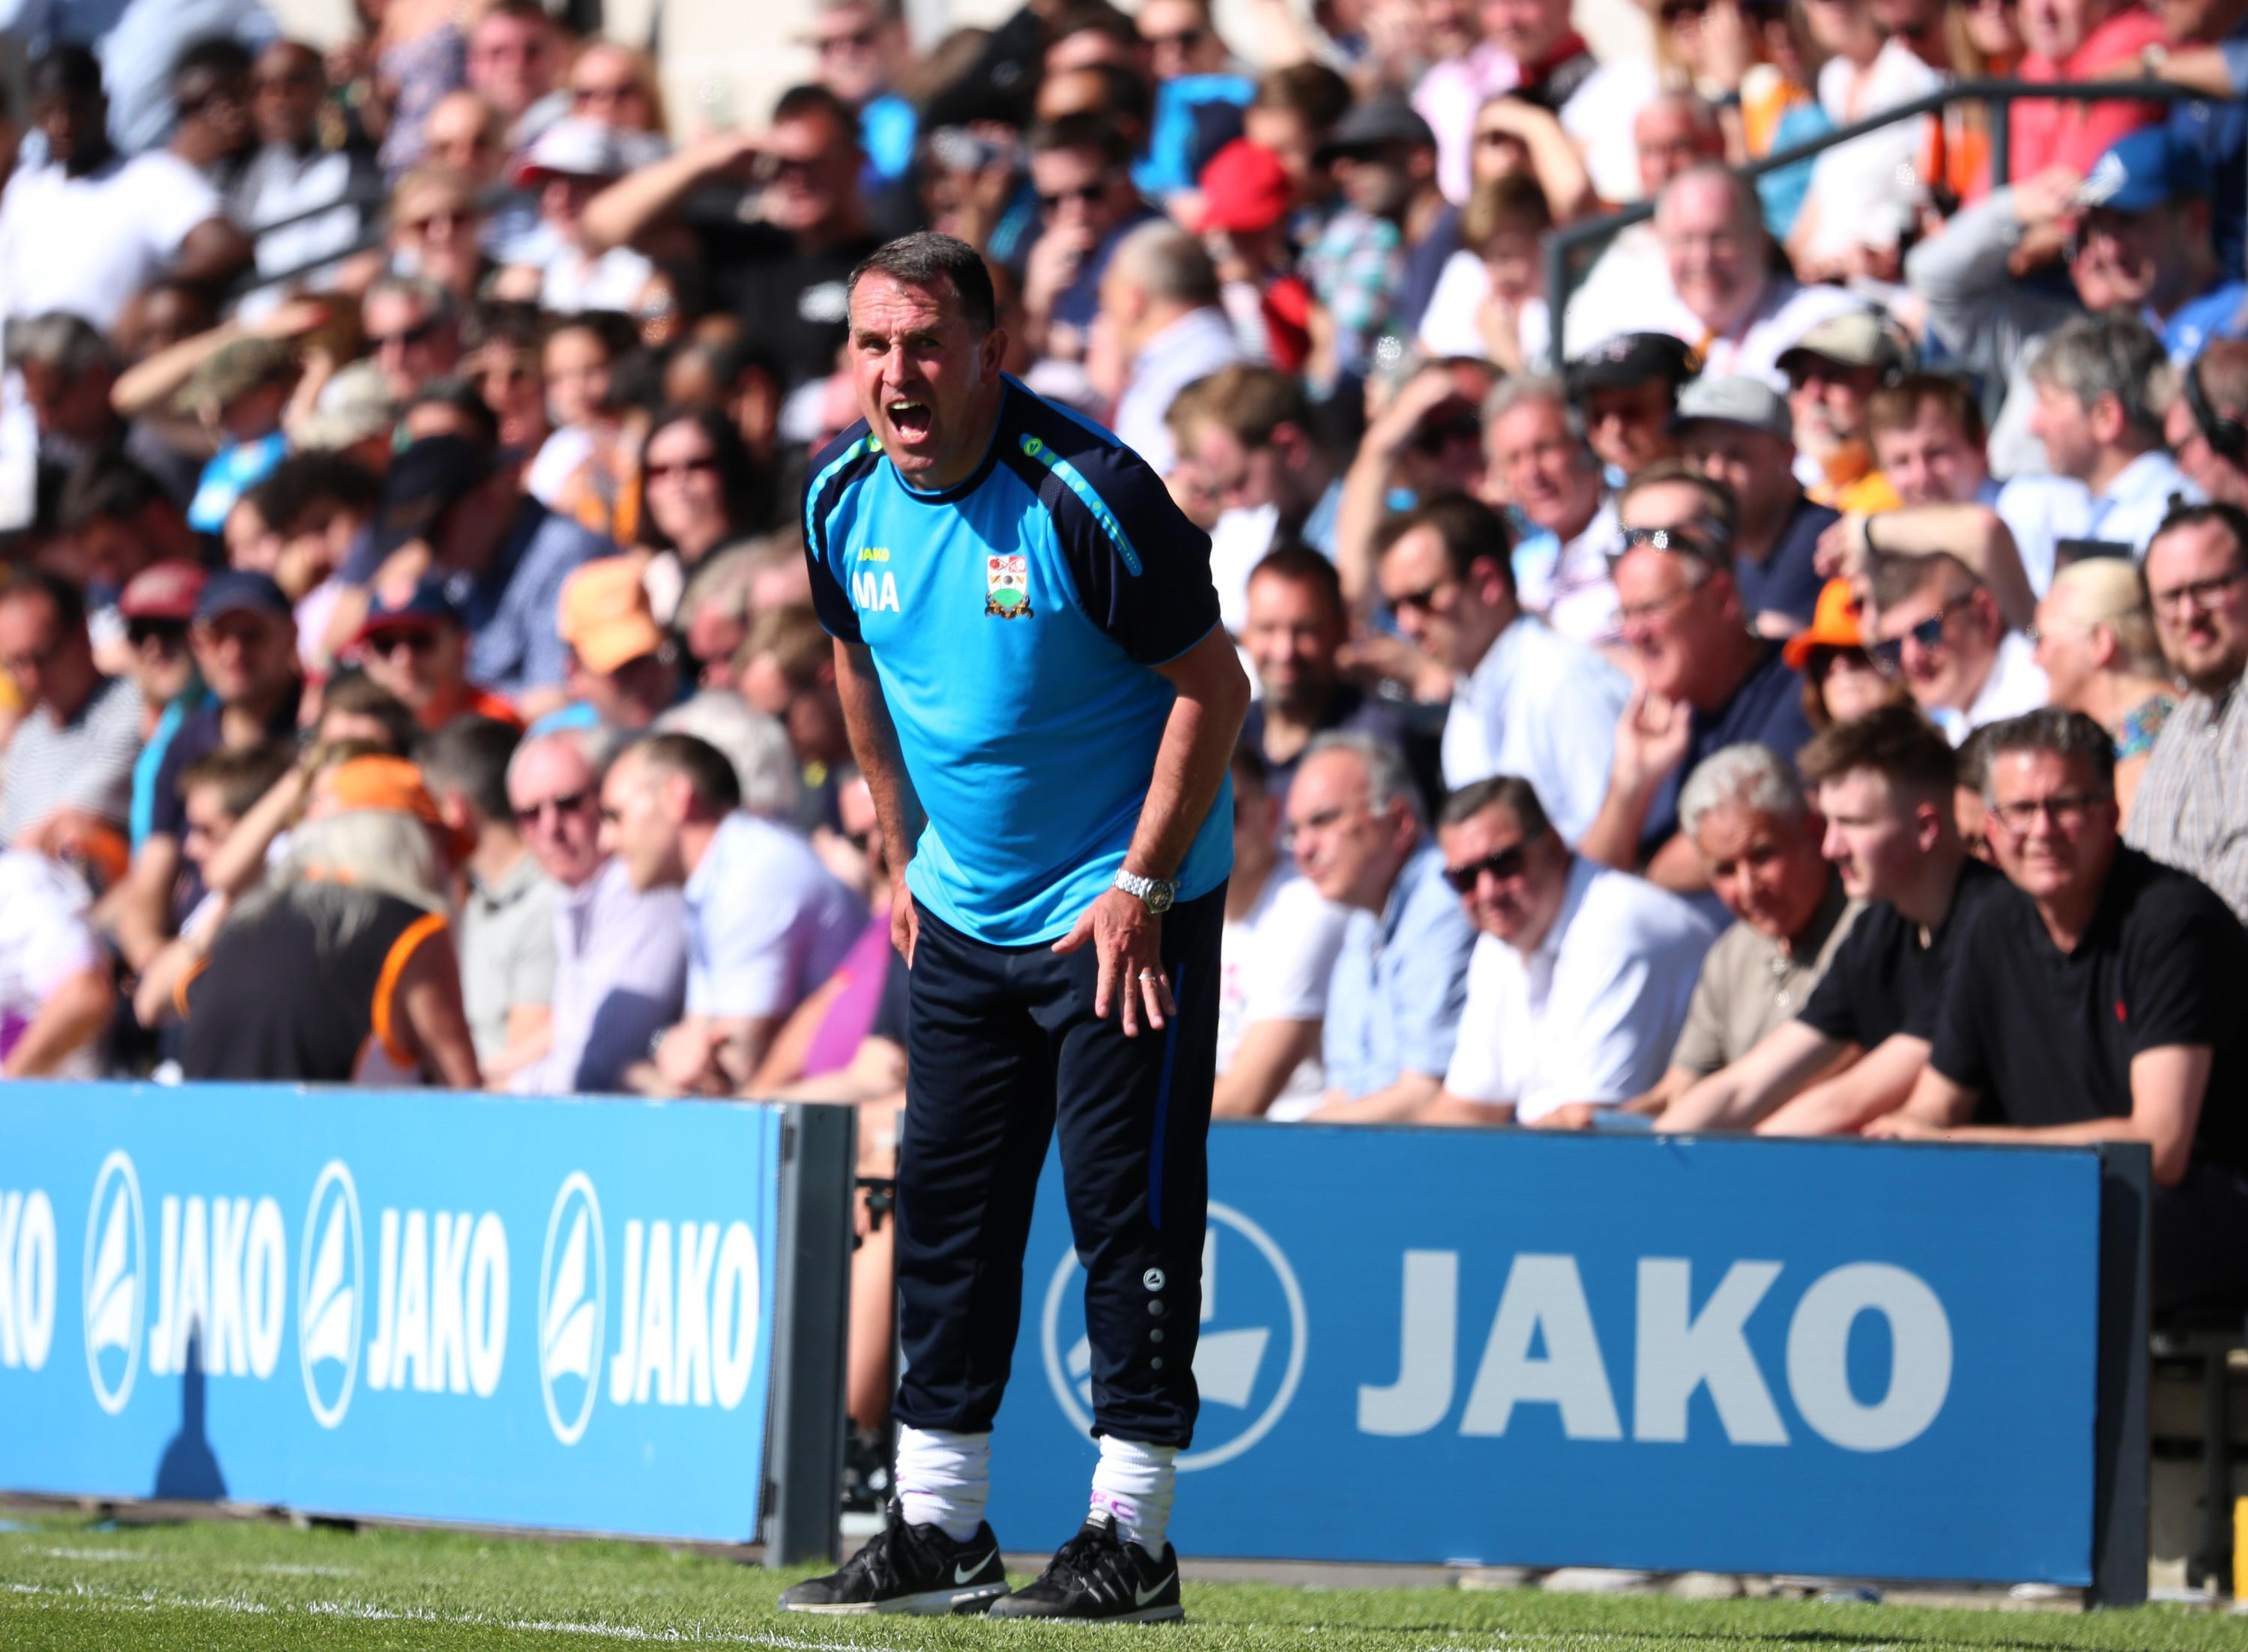 Martin Allen and the Chesterfield fans will be keeping everything crossed for a win, and a much-needed one at that